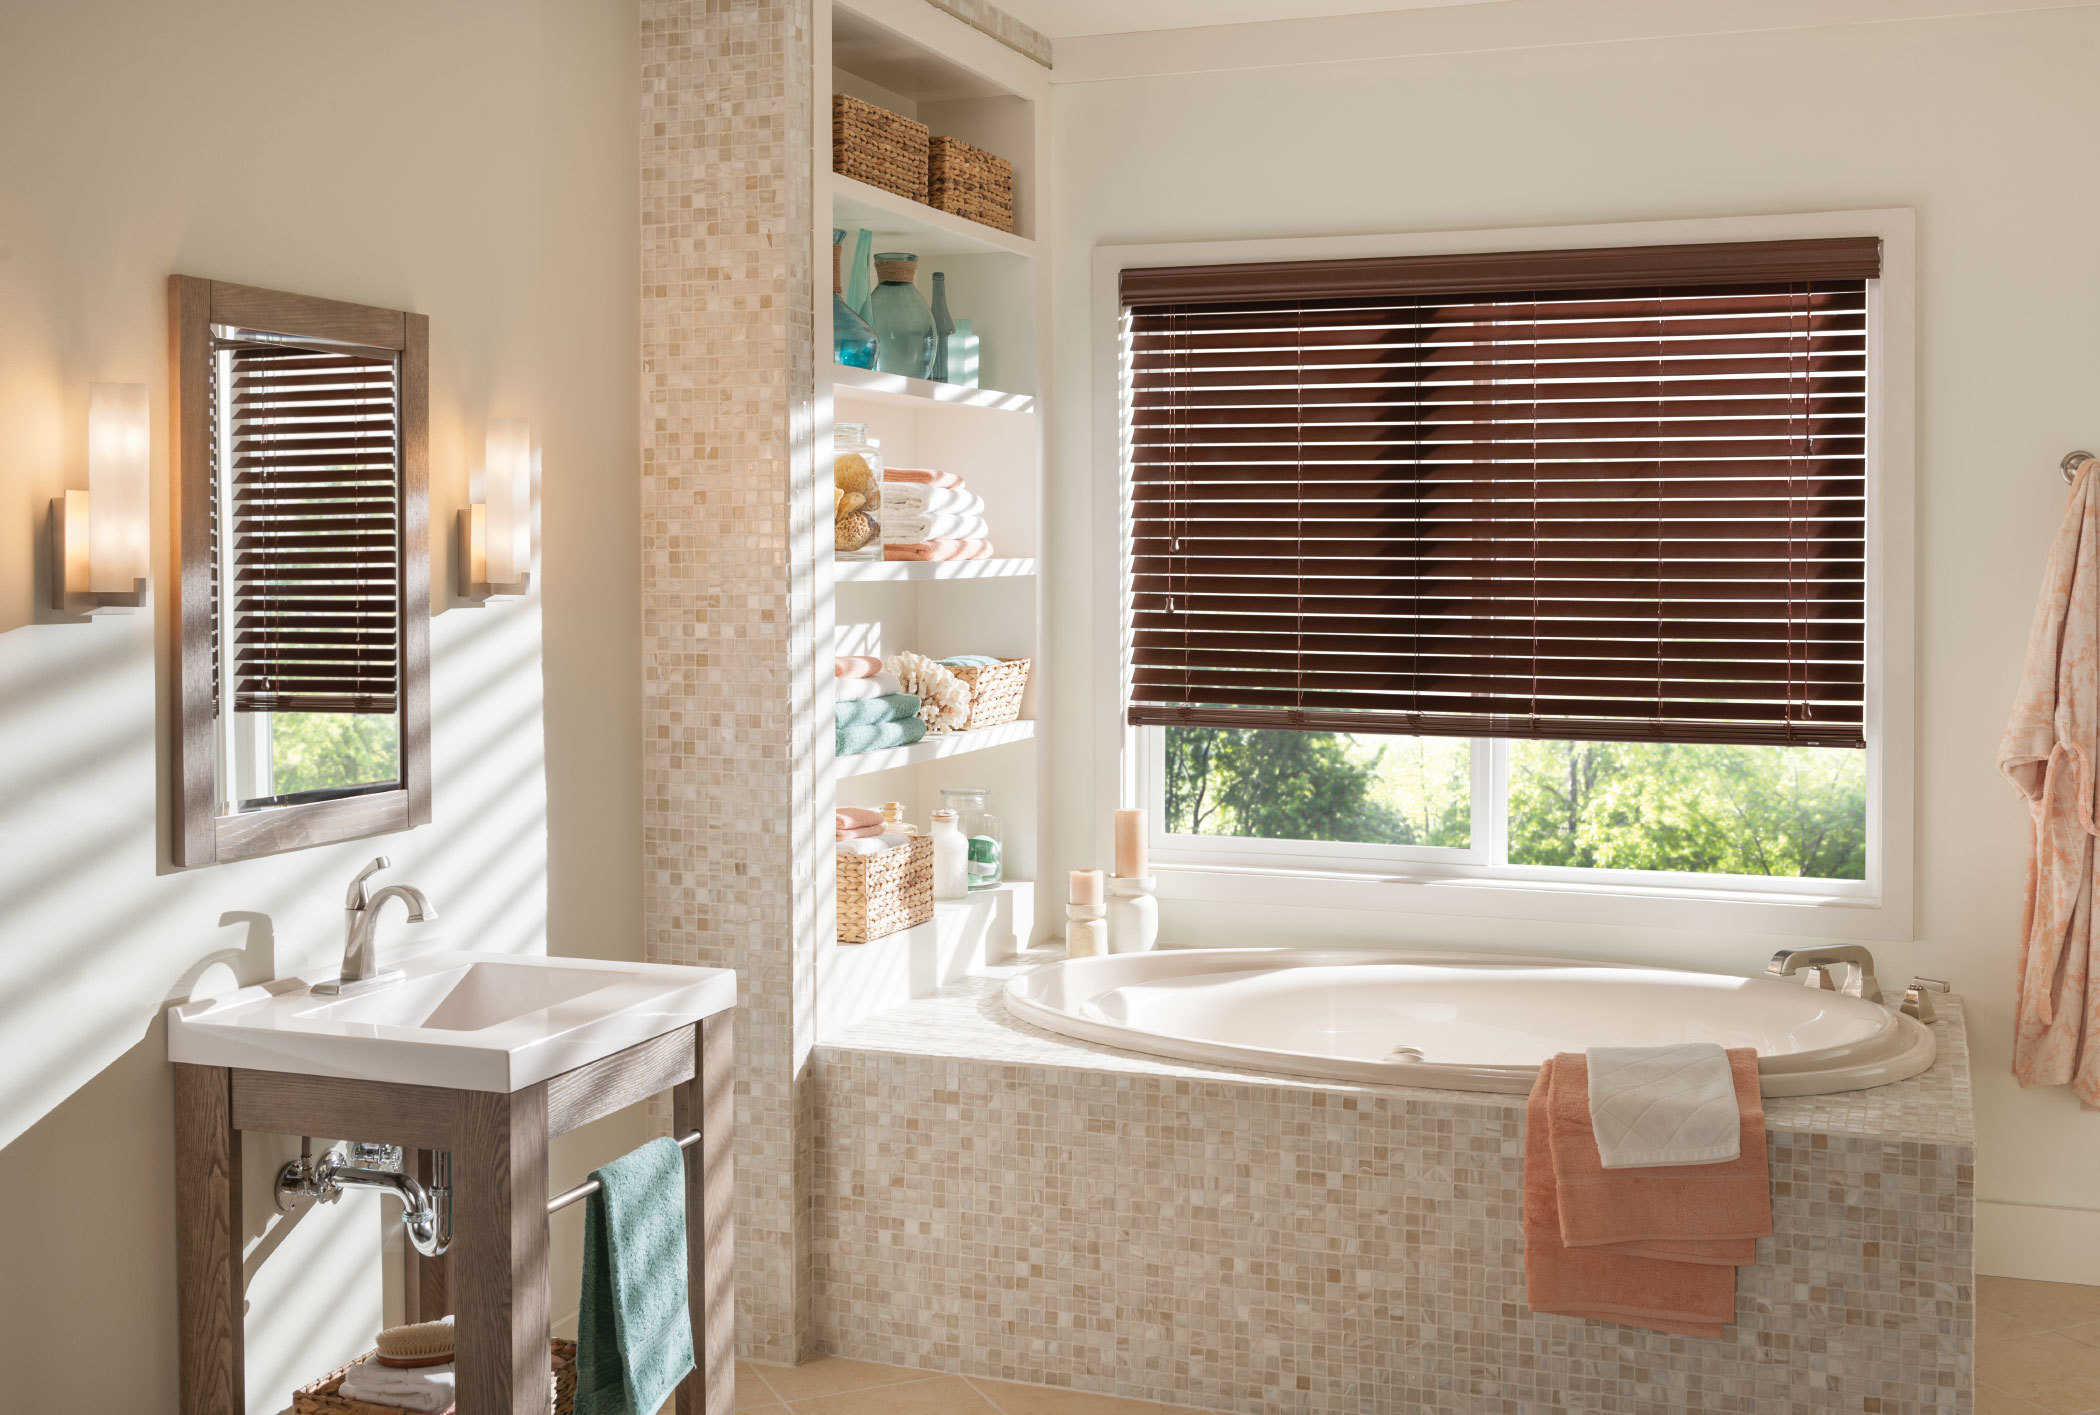 for bathroom cozy decor windows ceramic white and plus your blinds window bathtub candlestick with wood plantation christmas faux design